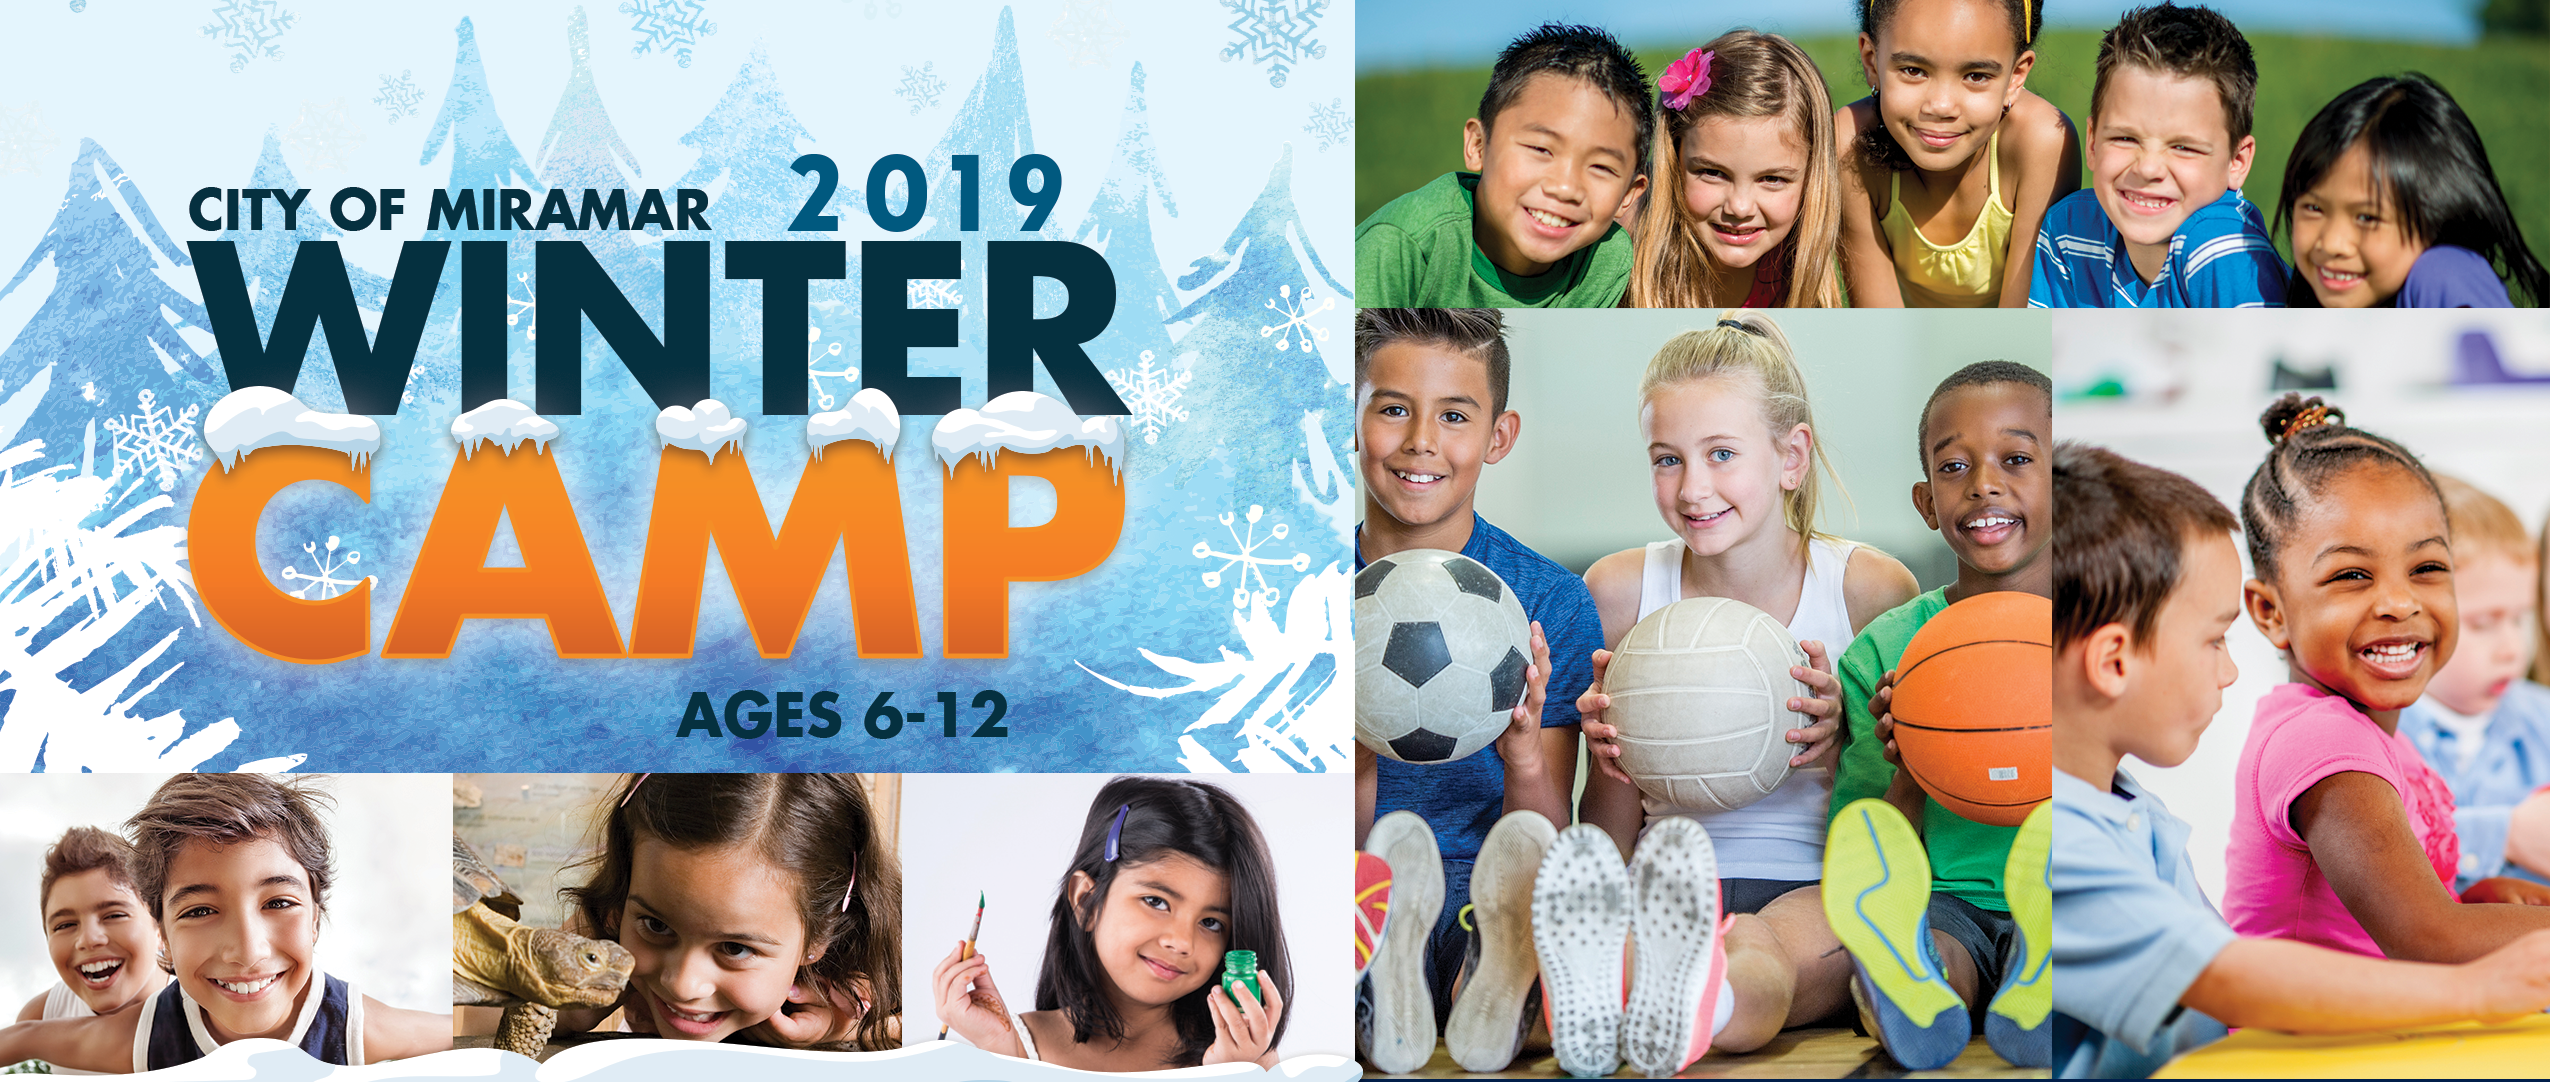 Winter Camp 2019 City of Miramar